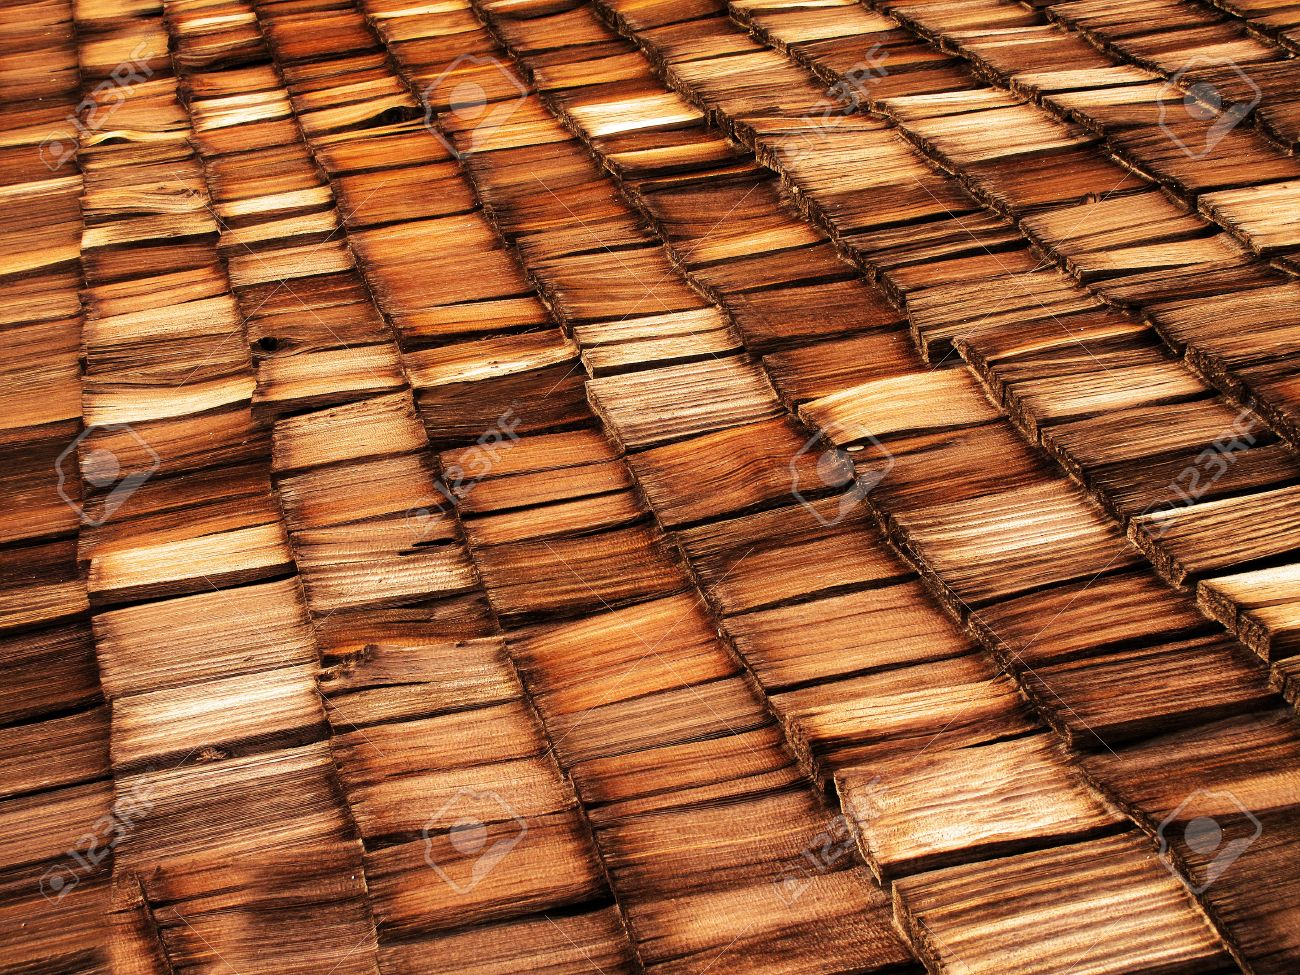 Old wood shingle roof with texture and brown color Stock Photo - 17531159